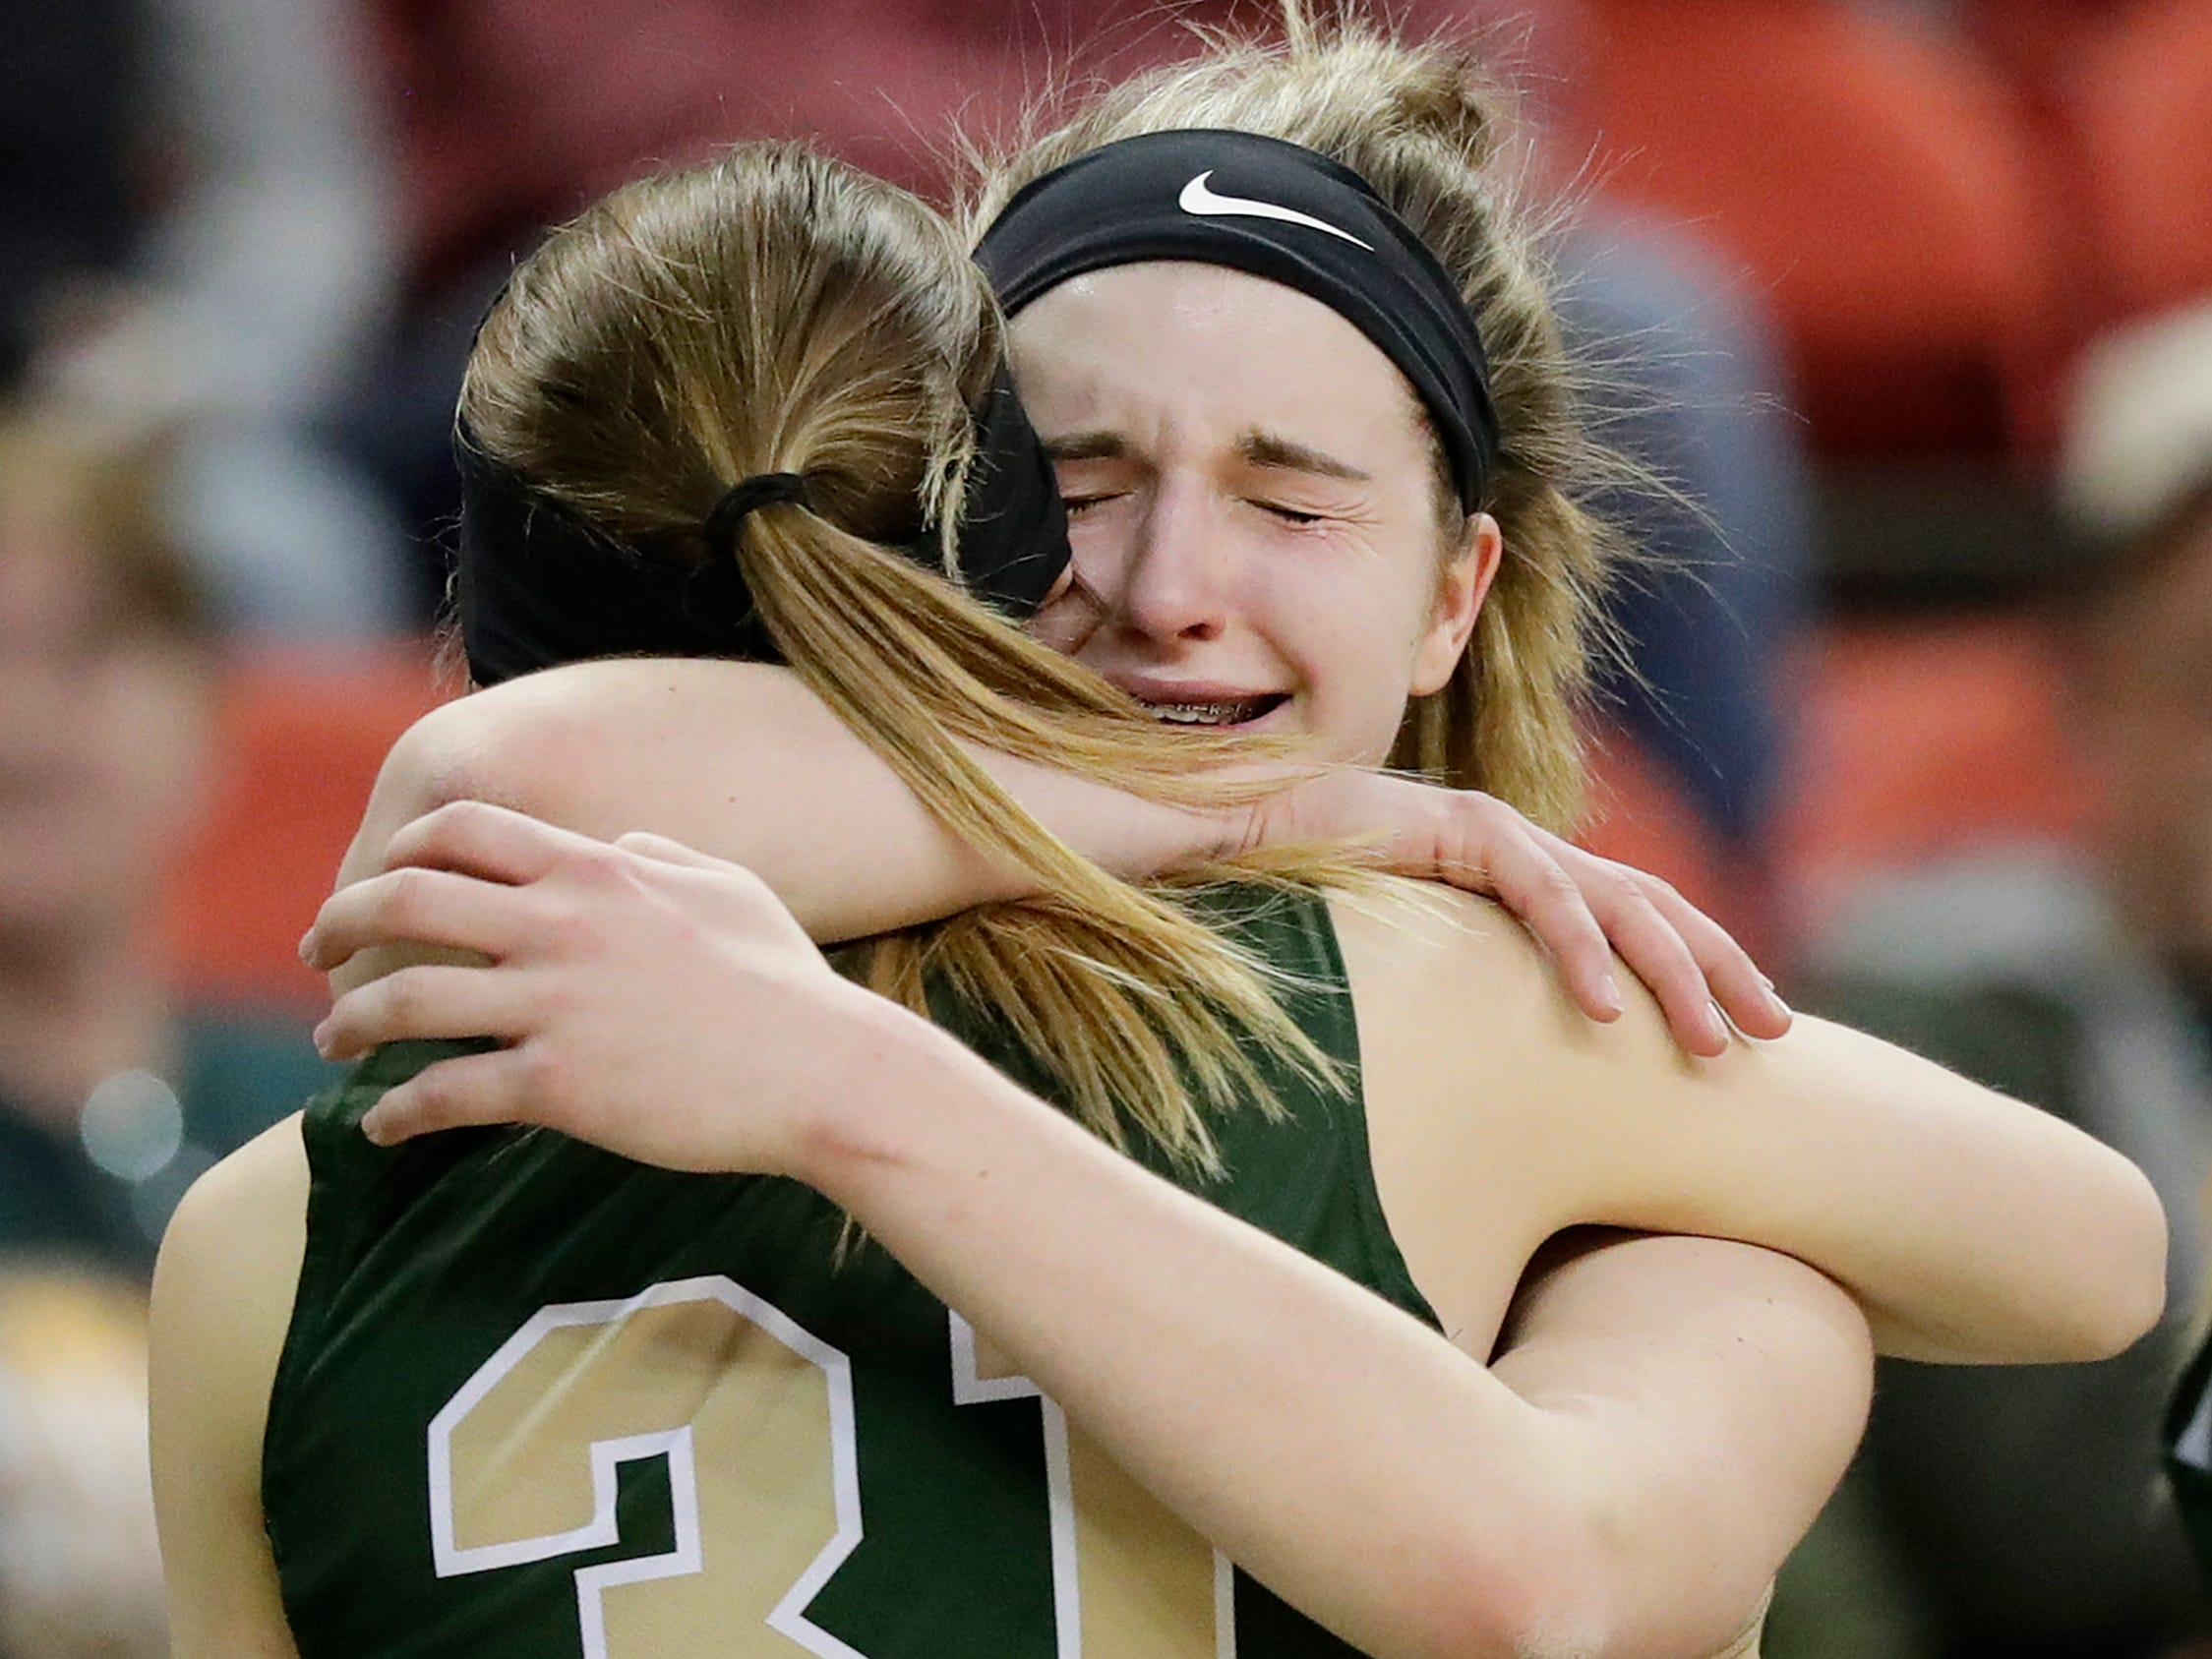 Colby's Alyssa Underwood (31) hugs Colby's Hailey Voelker after being subbed out near the end of a Division 3 semifinal against Melrose-Mindoro at the WIAA state girls basketball tournament at the Resch Center on Thursday, March 7, 2019, in Ashwaubenon, Wis.